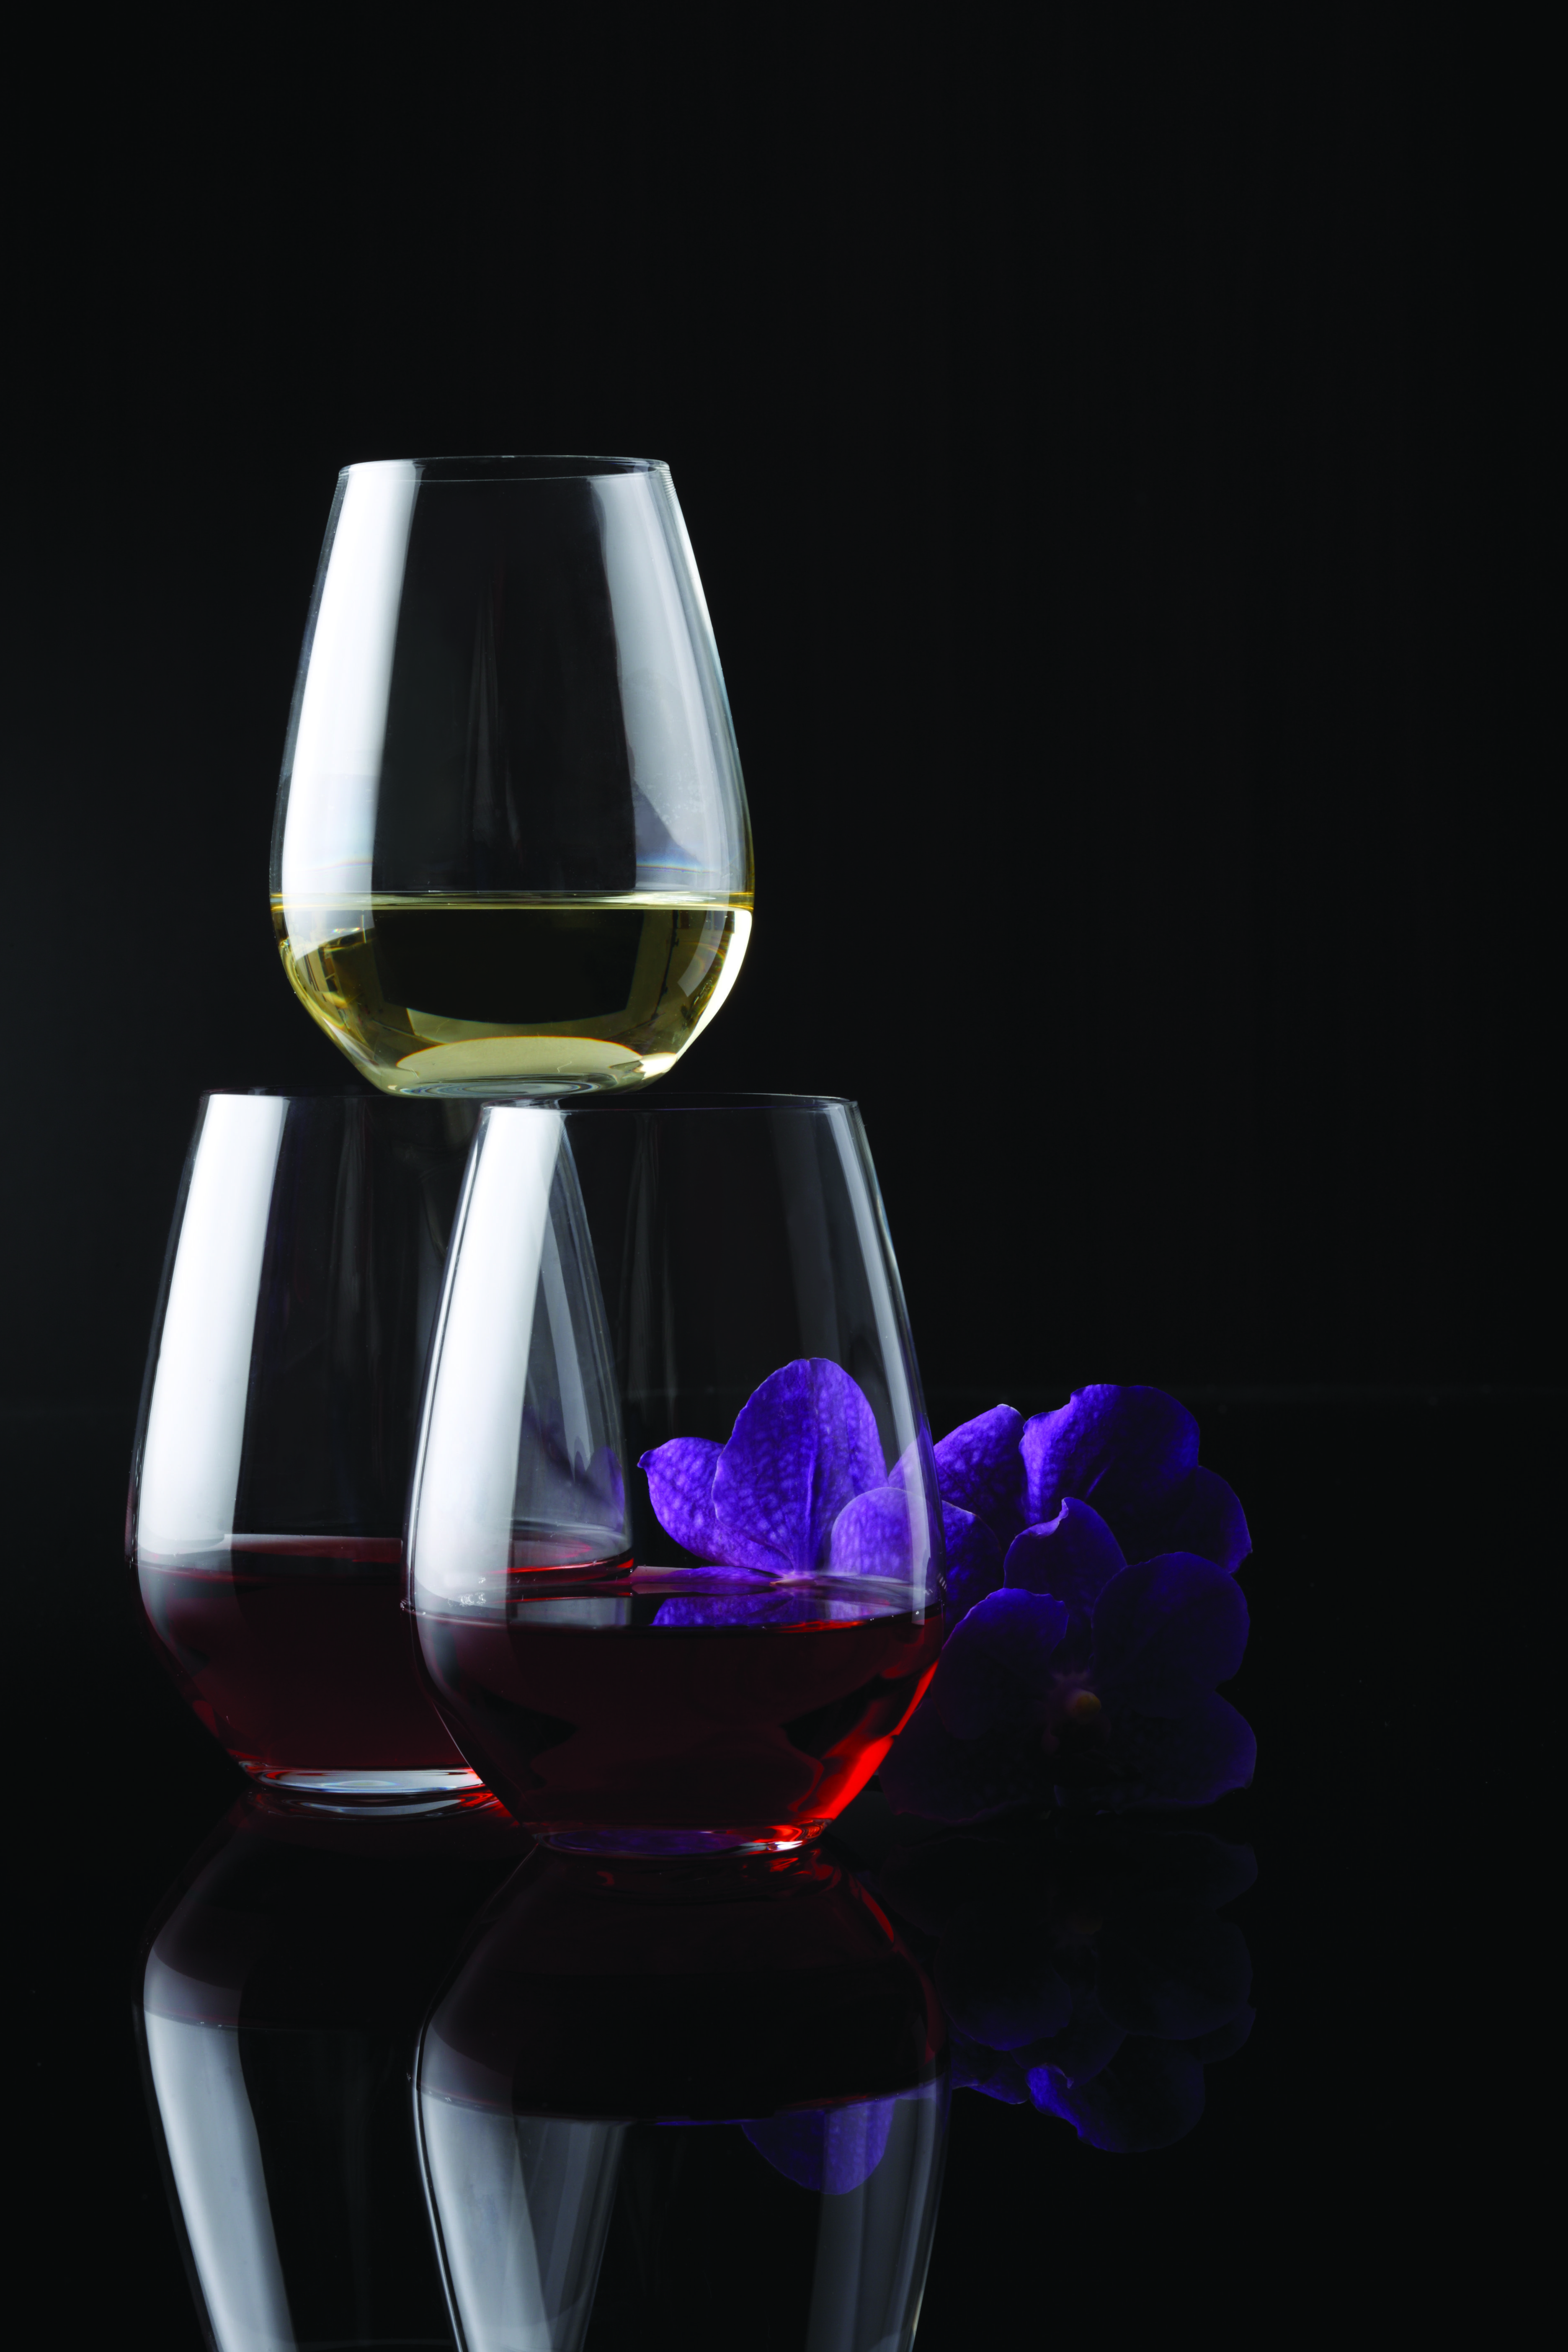 Krosno is renowned for high quality glassware and timeless designs. Krosno's Vino collection offers a wider variety of styles to suit all entertaining occasions.